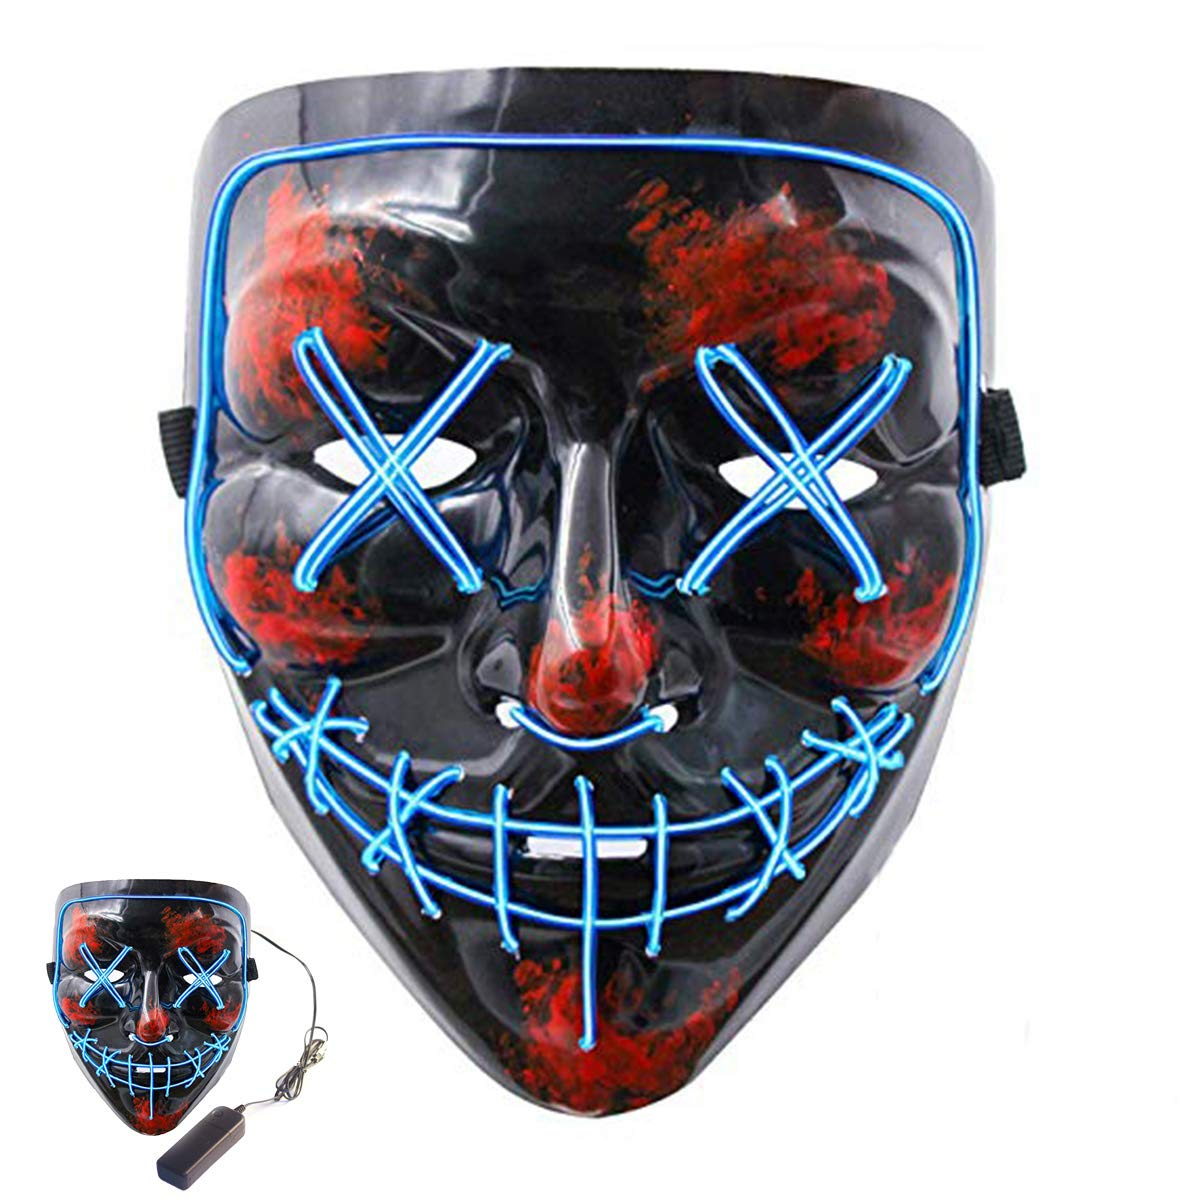 Halloween Scary Mask Led Cosplay Costume Mask EL Wire Light up Mask for Halloween Festival Parties Halloween Scary Mask Cosplay Master-Ed